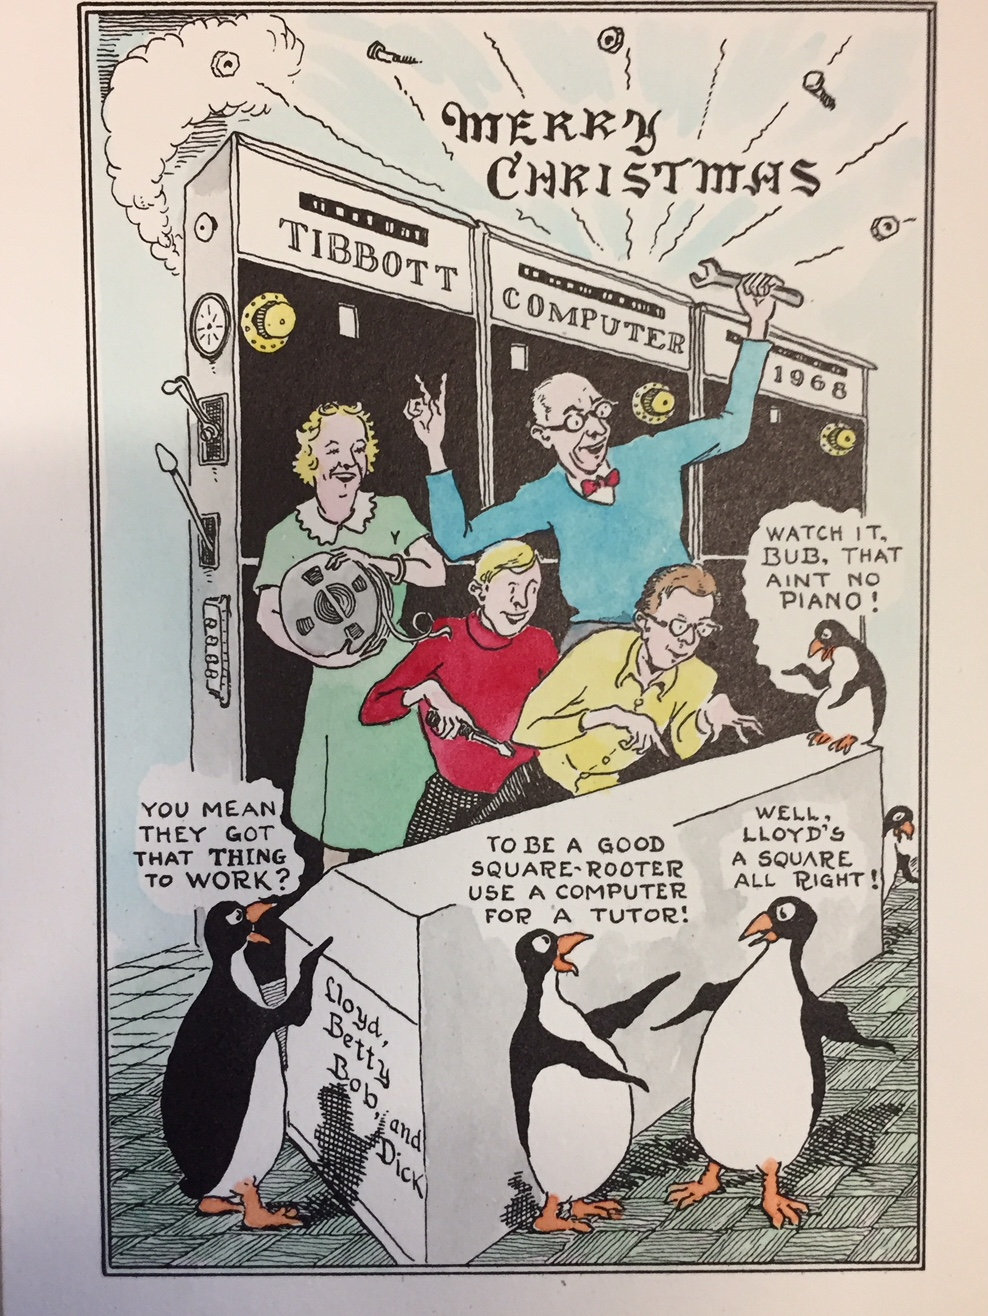 Seth's family Christmas card with penguins and drawn by his dad